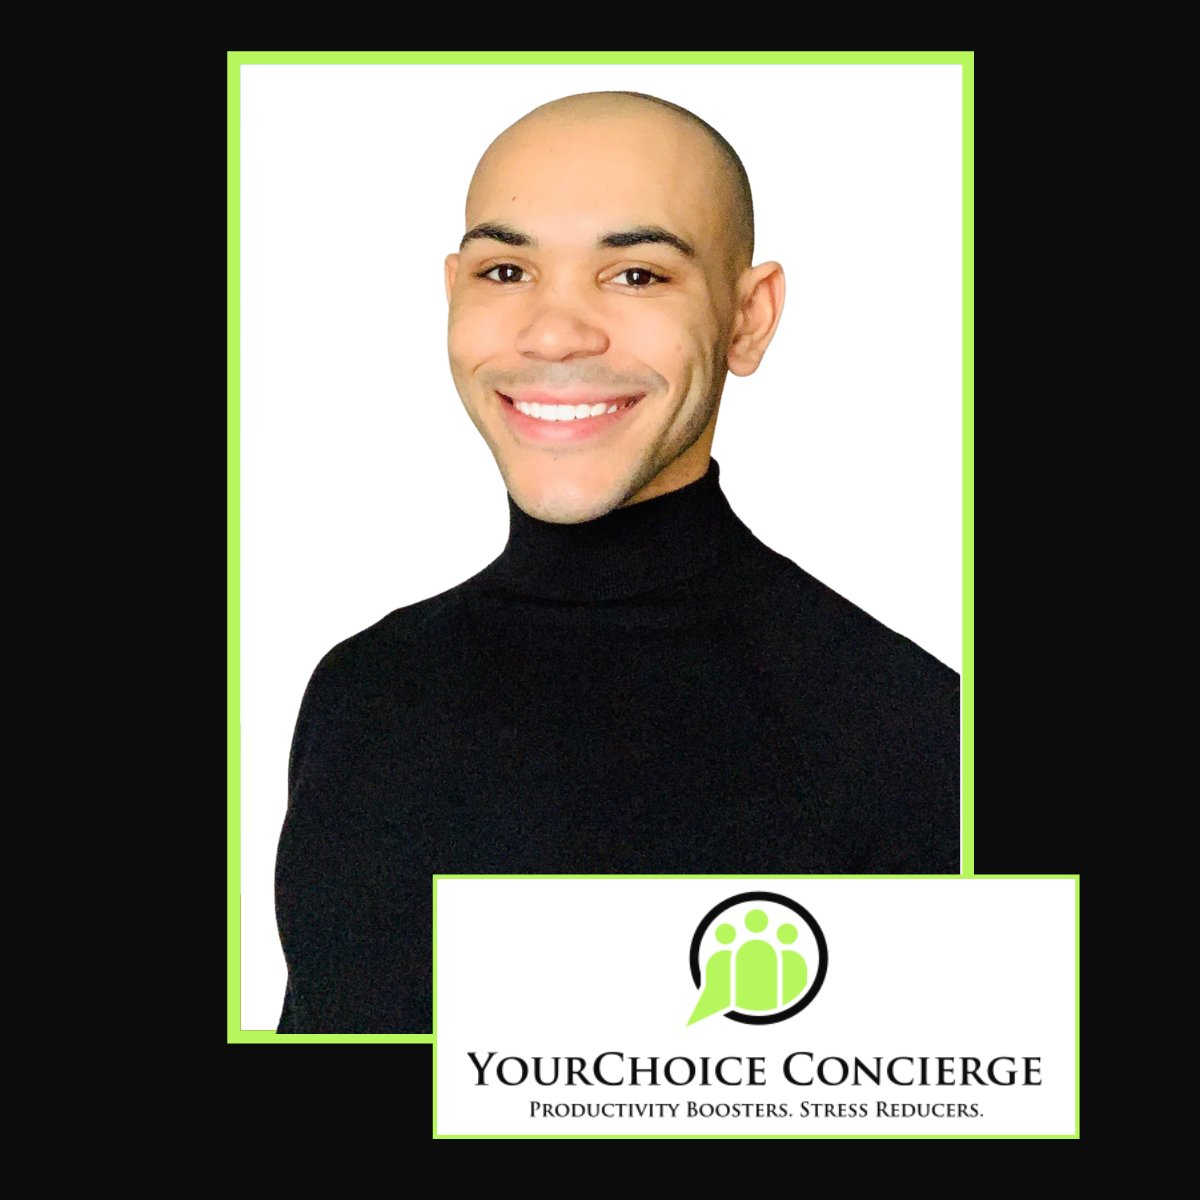 Say hello to our team member, KJ! He's extremely personable, hardworking and efficient. We're so happy to have him on the team!  Learn more about how our team can make your life easier:  #tuesdayvibe #teamworkmakesthedreamwork #worksmart #help #solutions